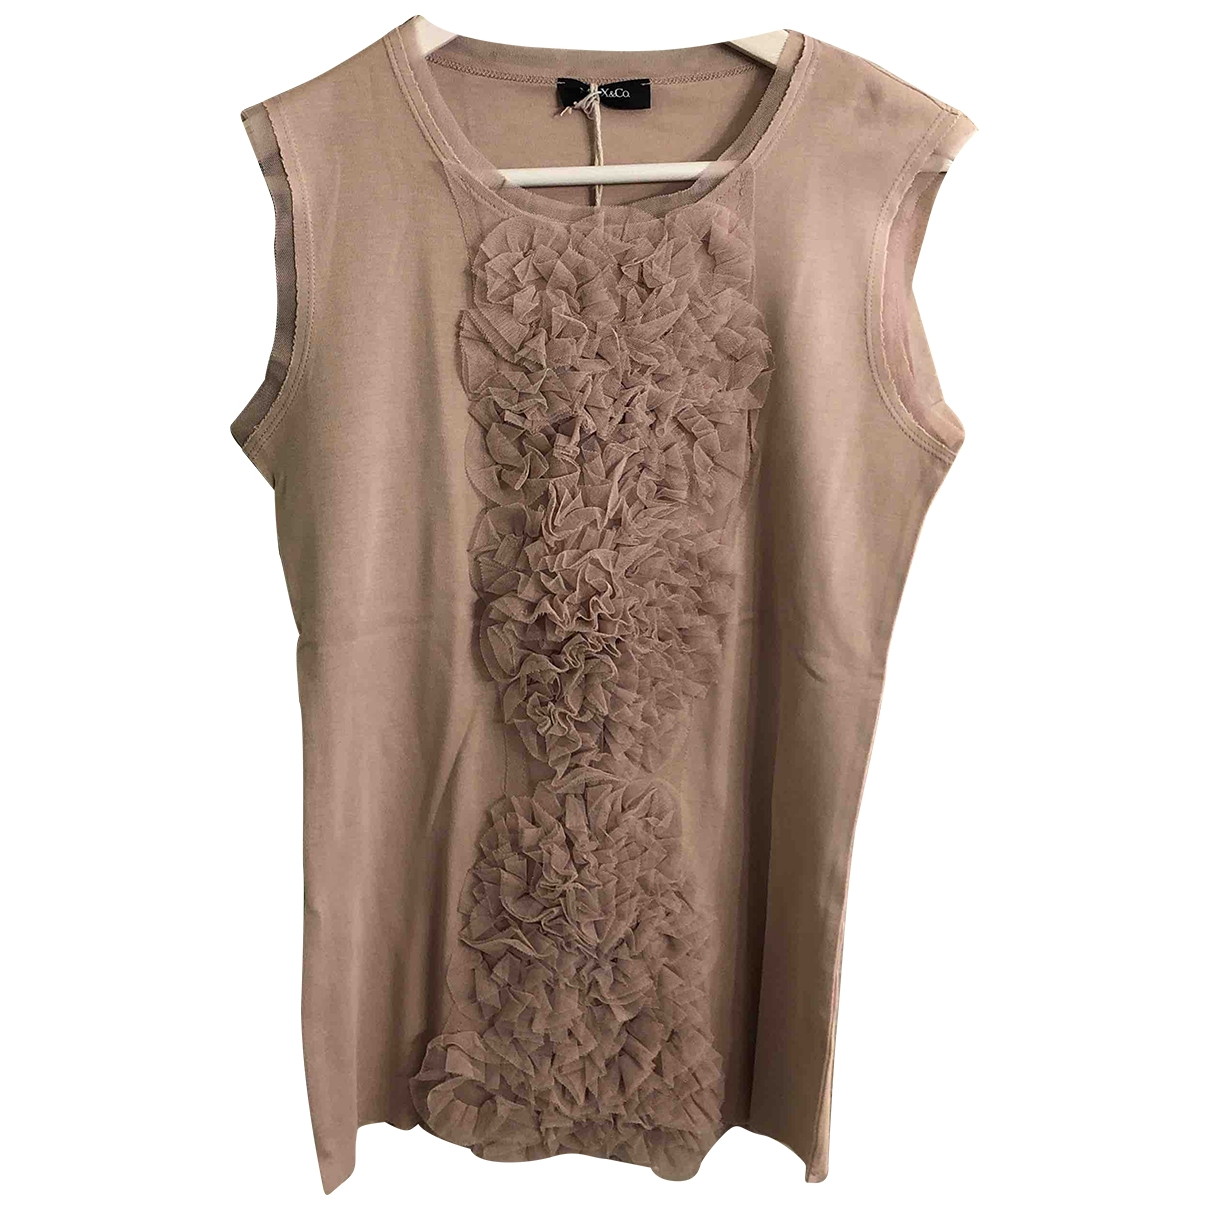 Max & Co \N Pink  top for Women S International